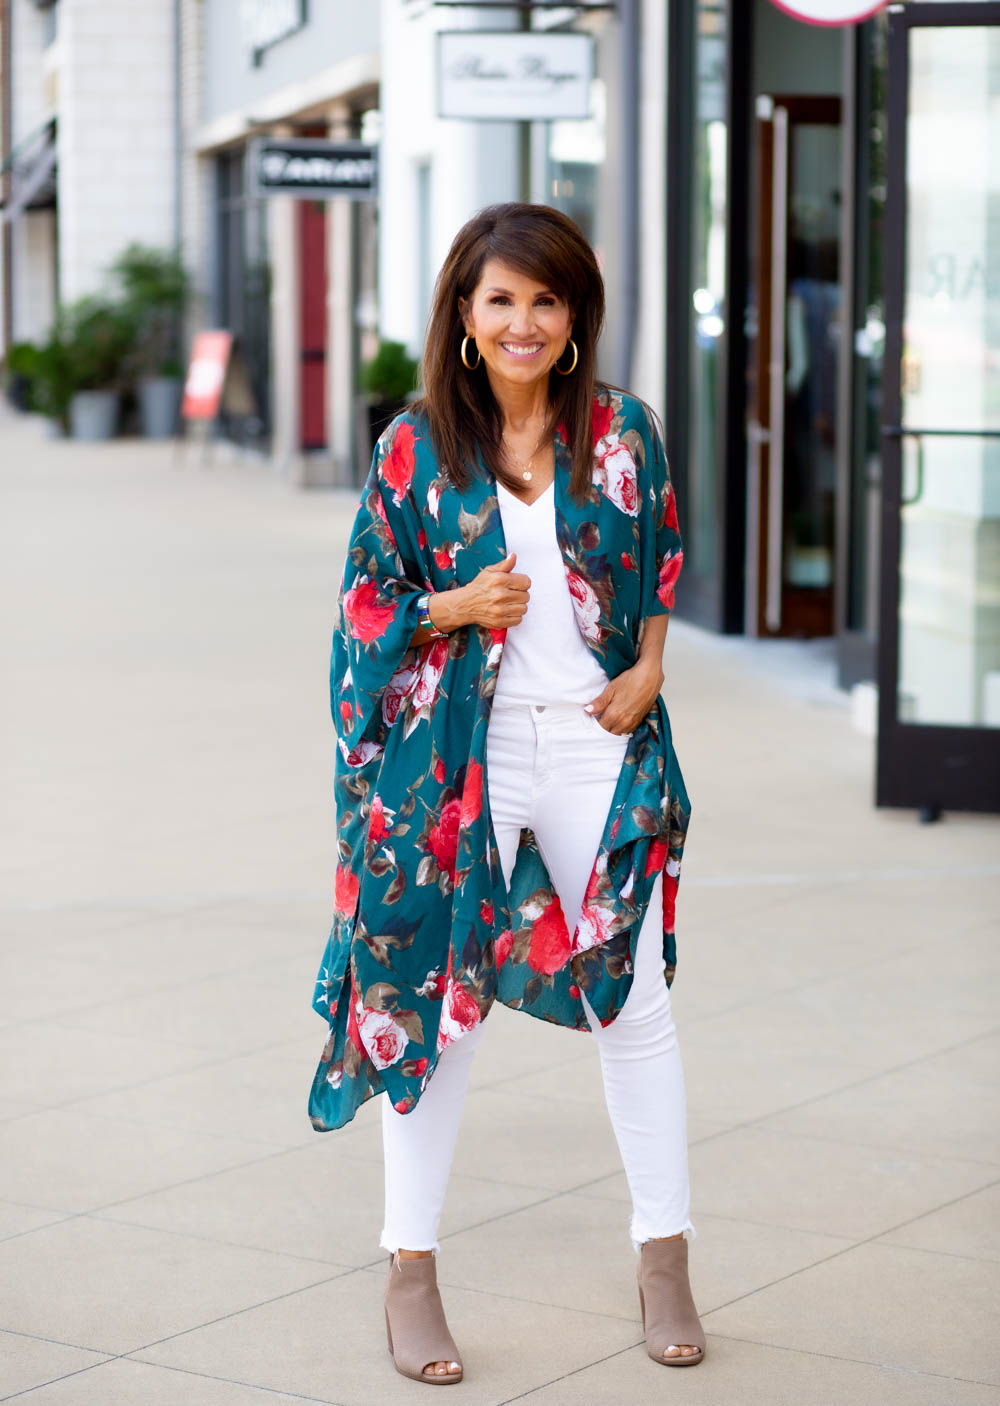 Colorful Floral Kimono from Sole Society